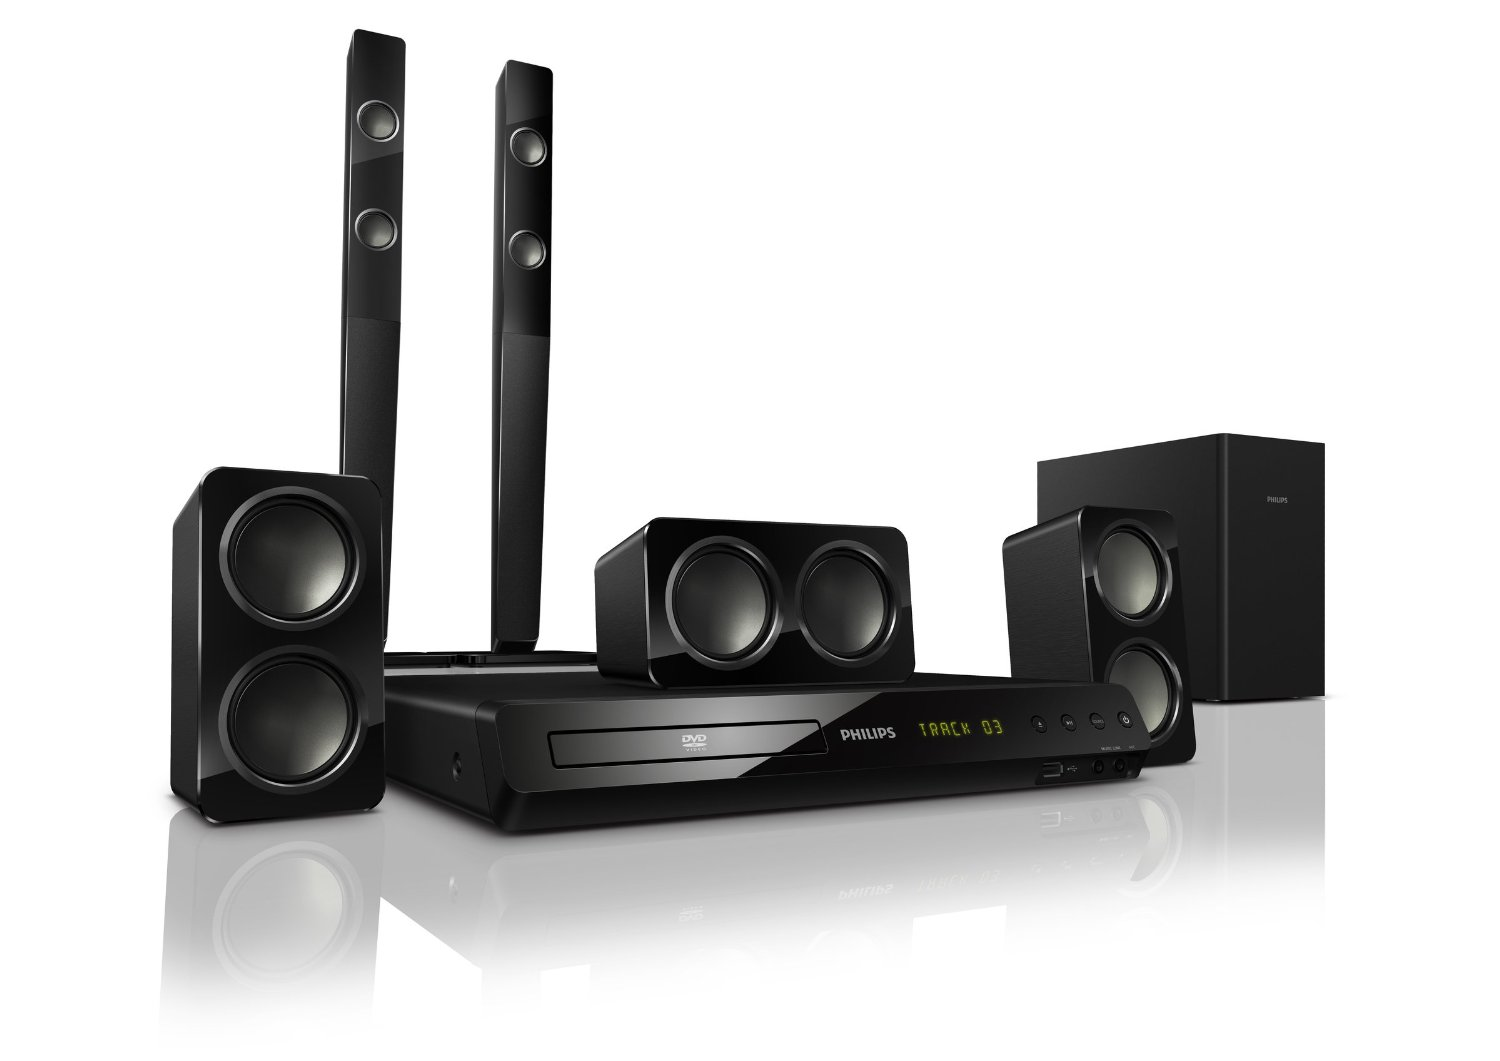 philips hts3538 5 1 dvd player surround sound system tower. Black Bedroom Furniture Sets. Home Design Ideas